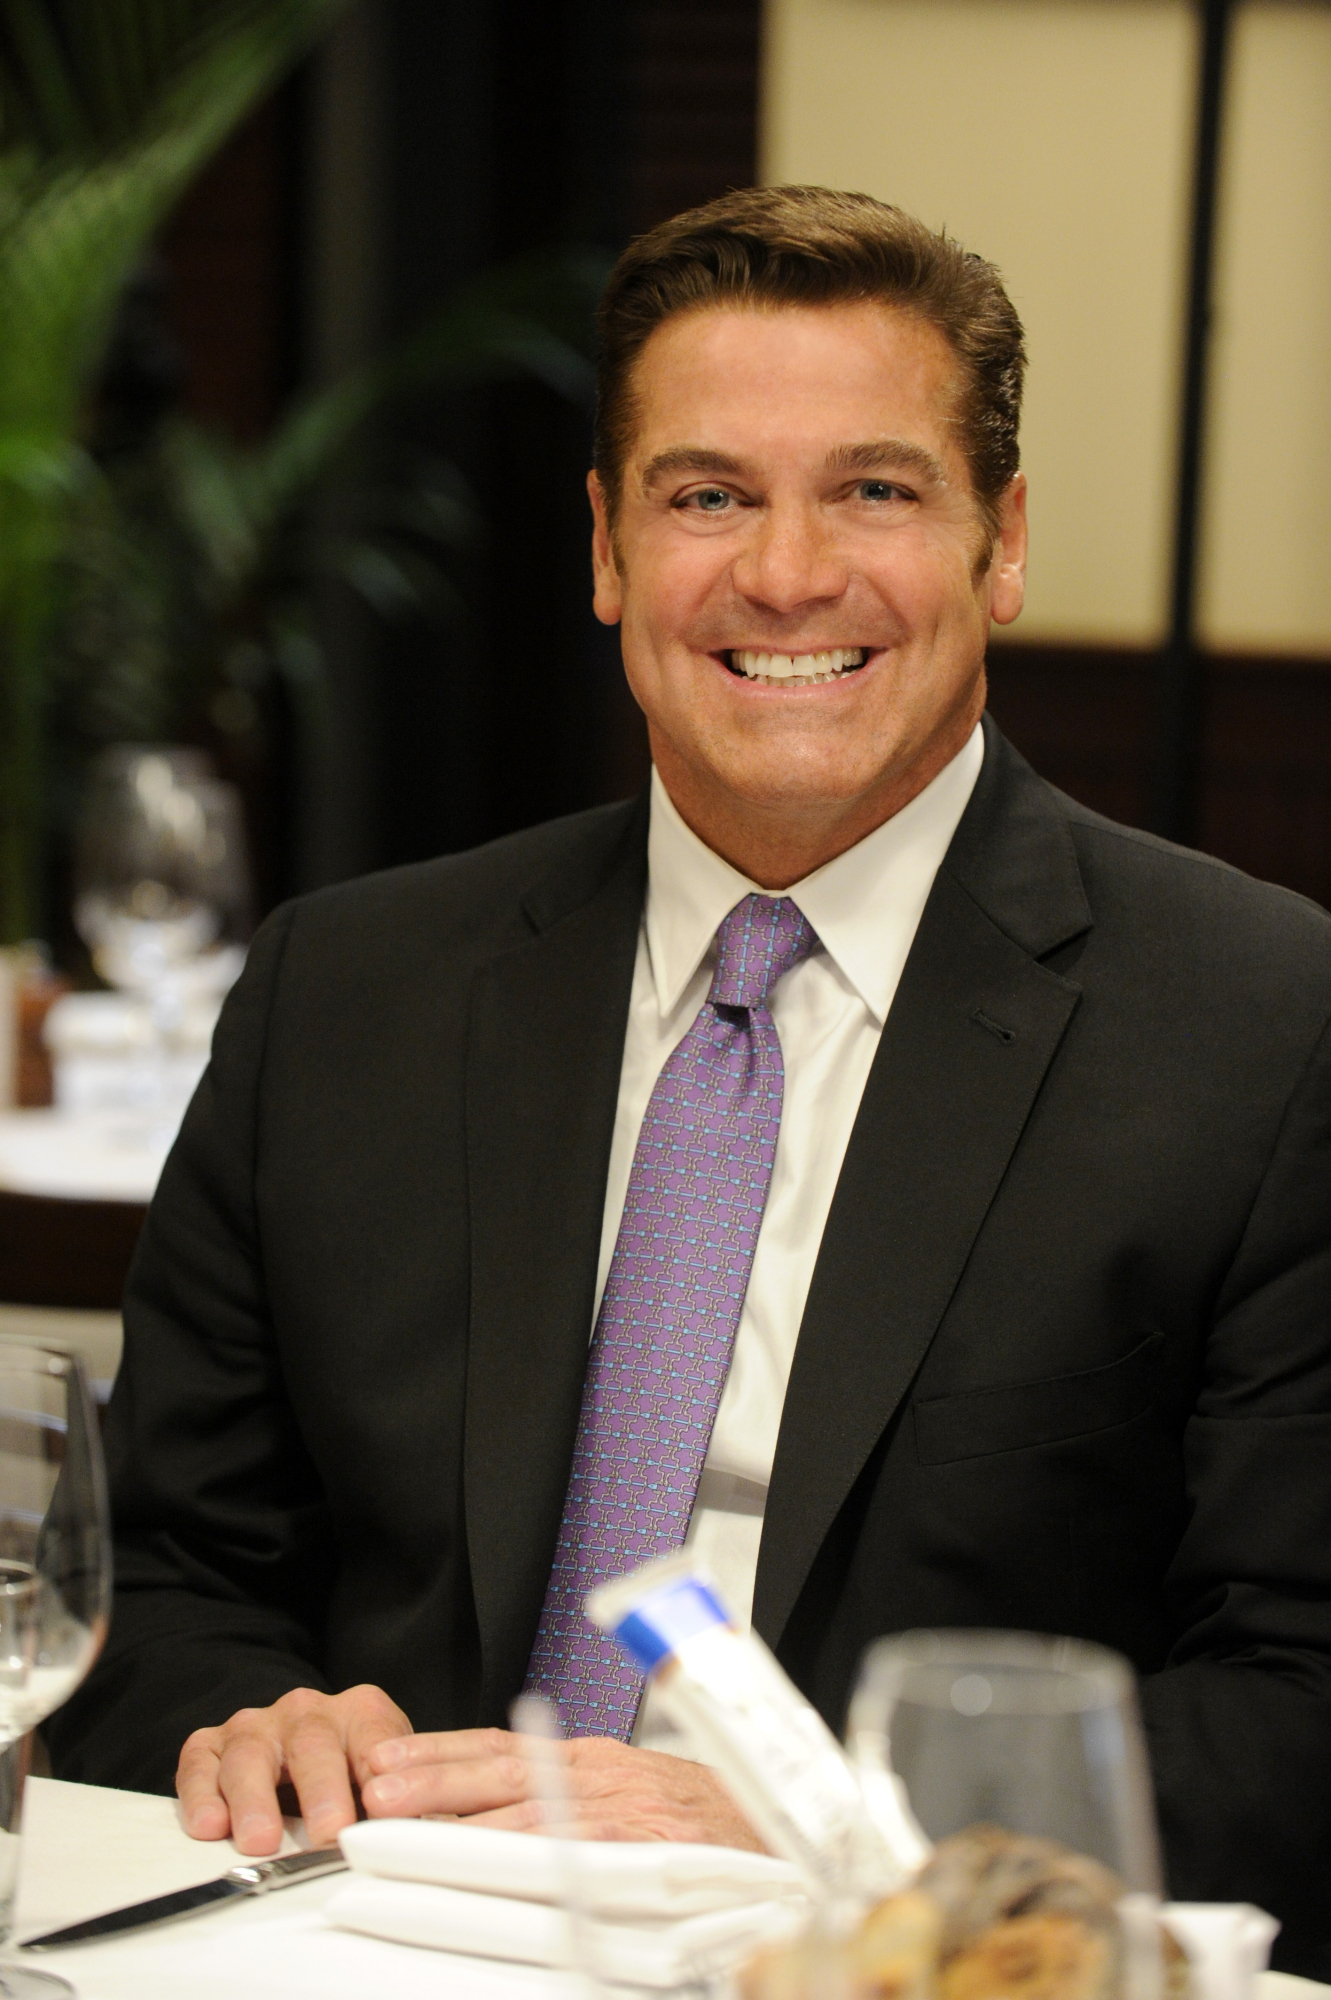 Anthony Wedo, CEO of Buffets, Inc.